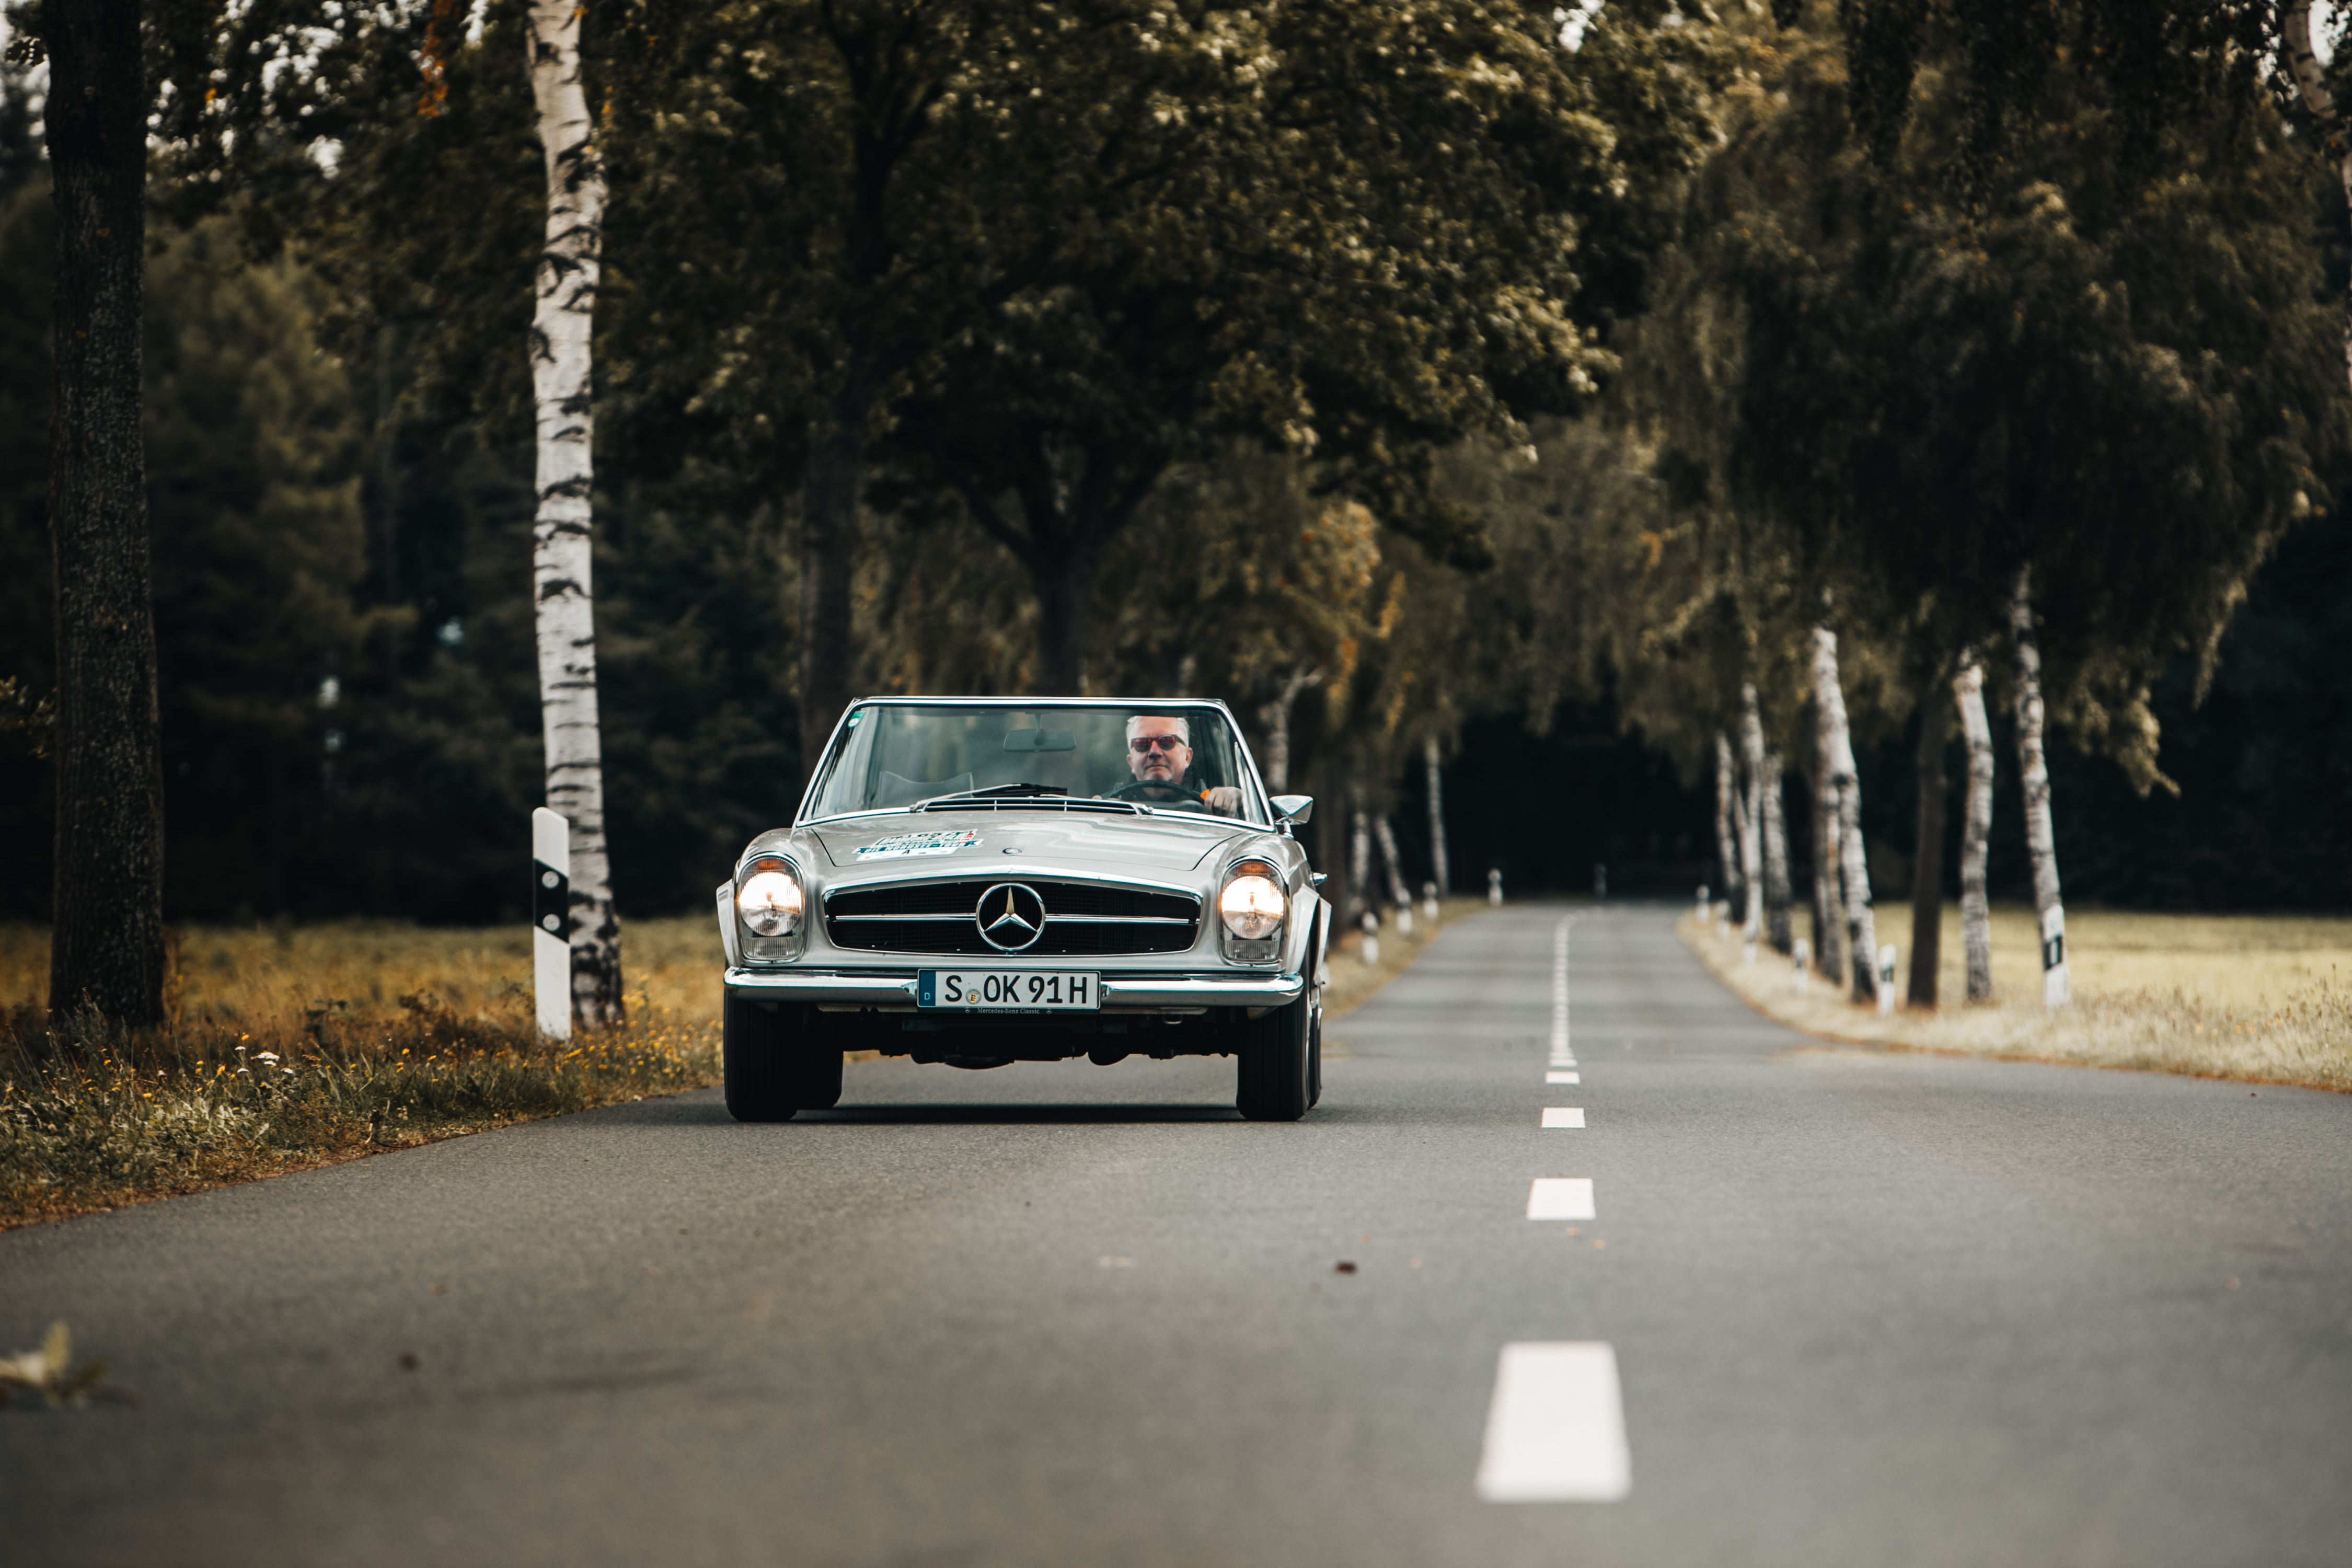 8cd46d3bdd Back in time – Mercedes-Benz 280 SL Pagoda – Dieter Losskarn